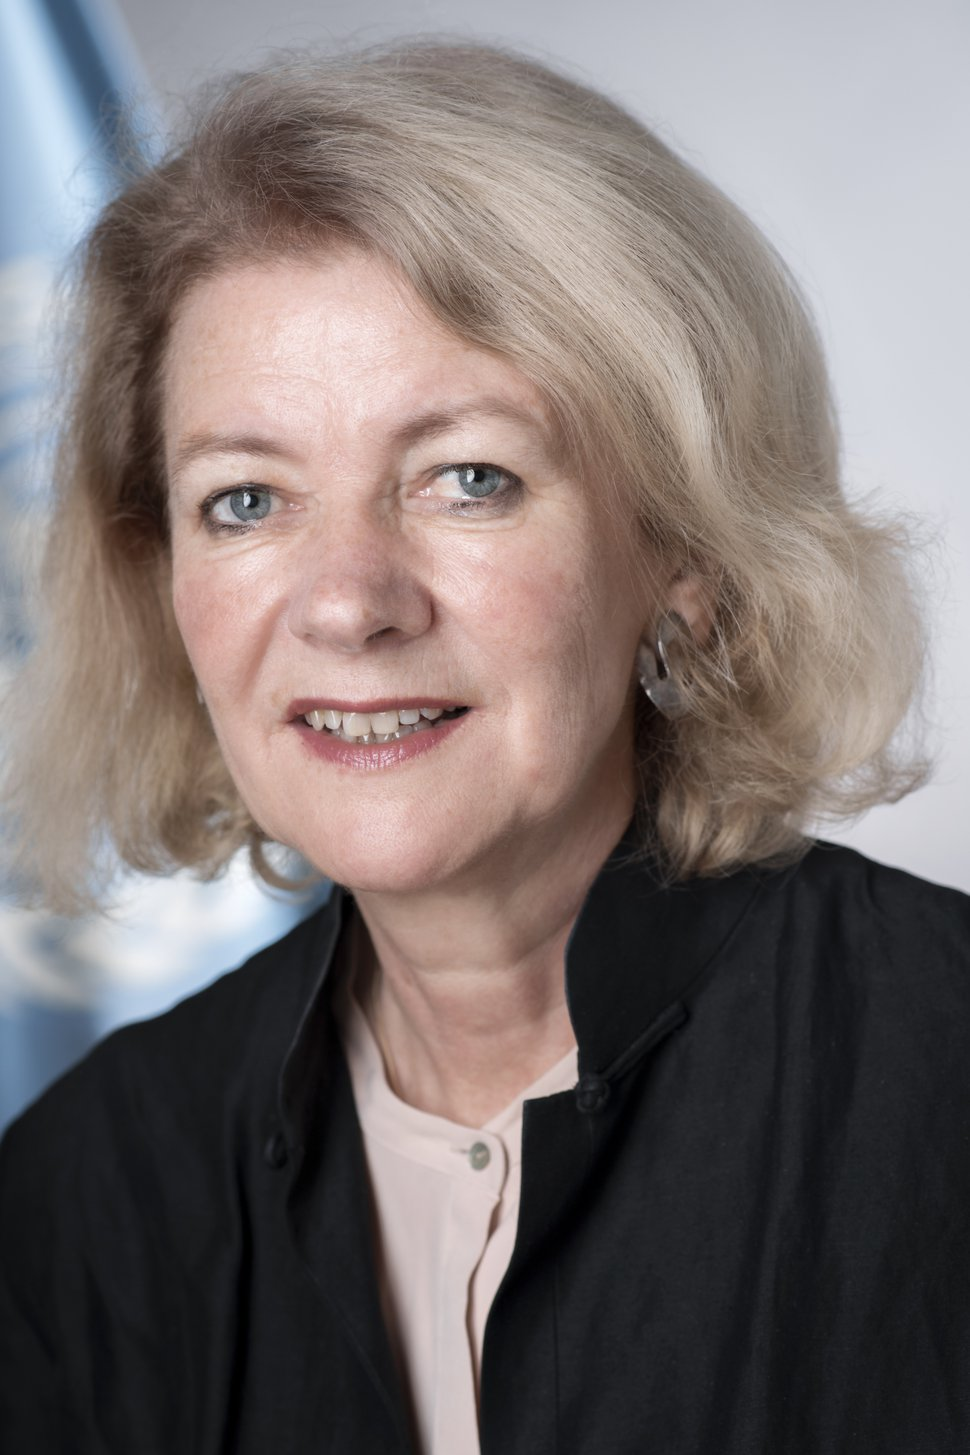 Alison Smale | UN Under-Secretary-General for Global Communications